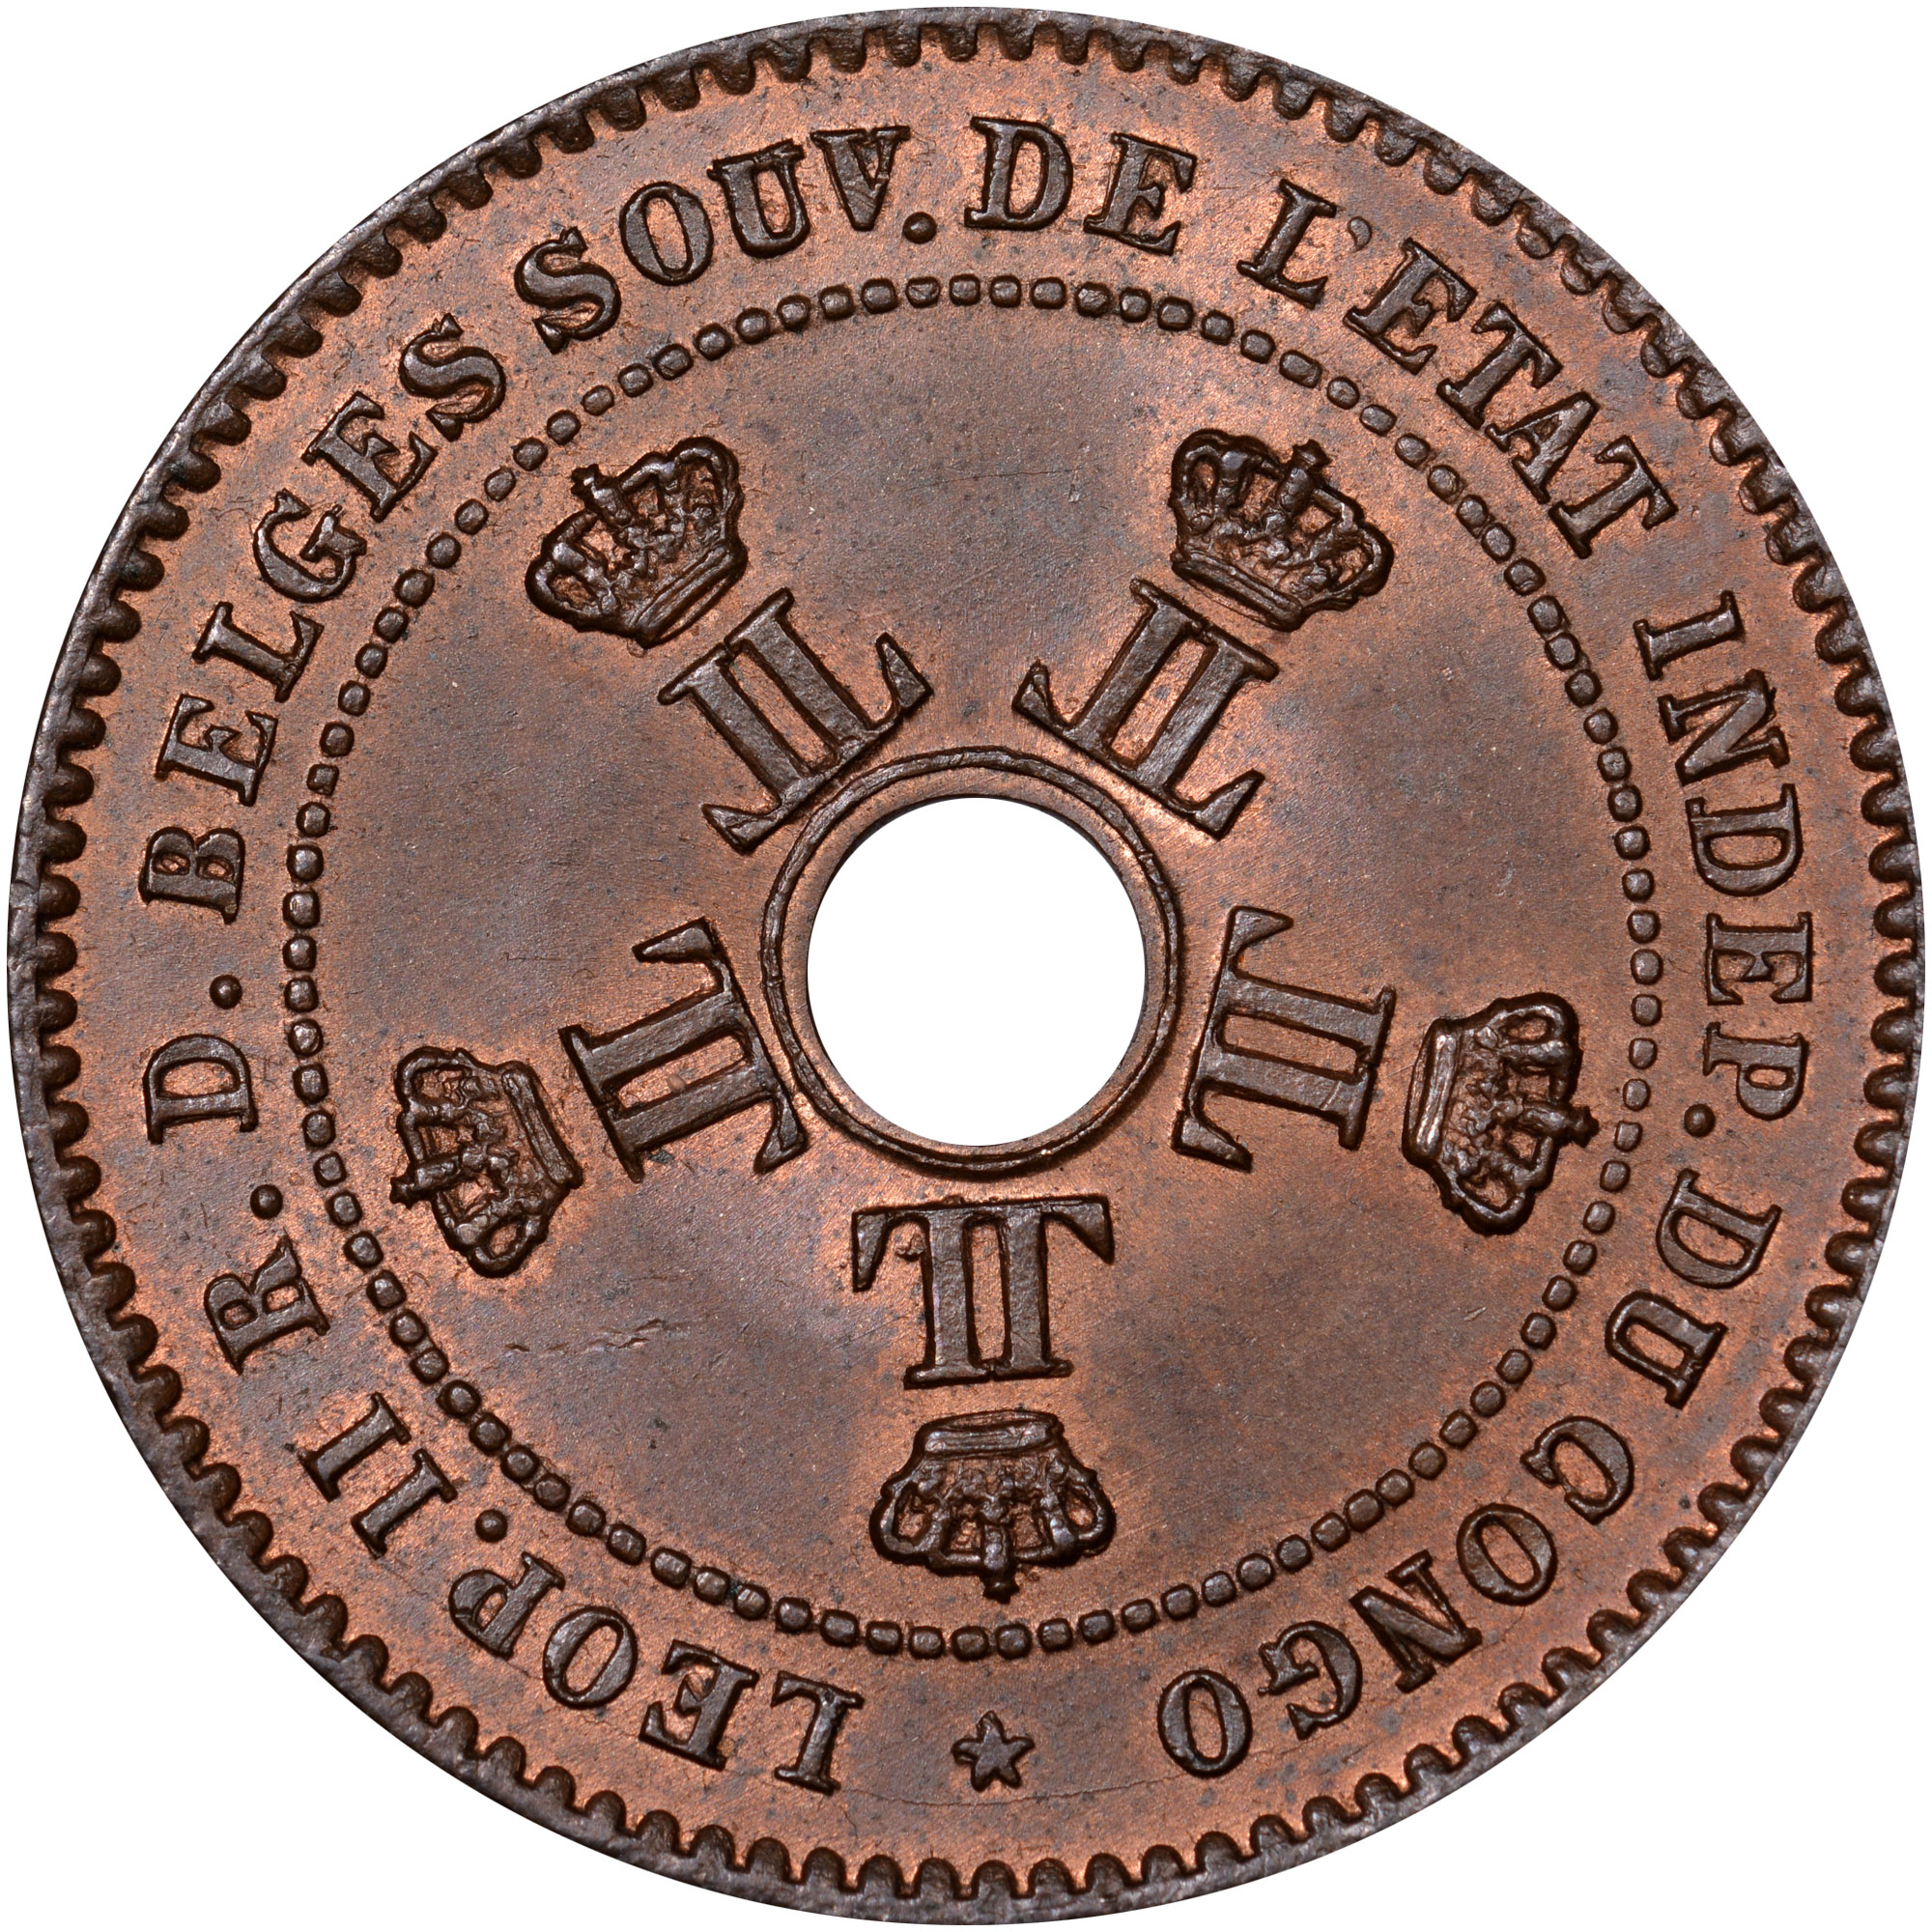 1887-1888 Congo Free State 2 Centimes obverse